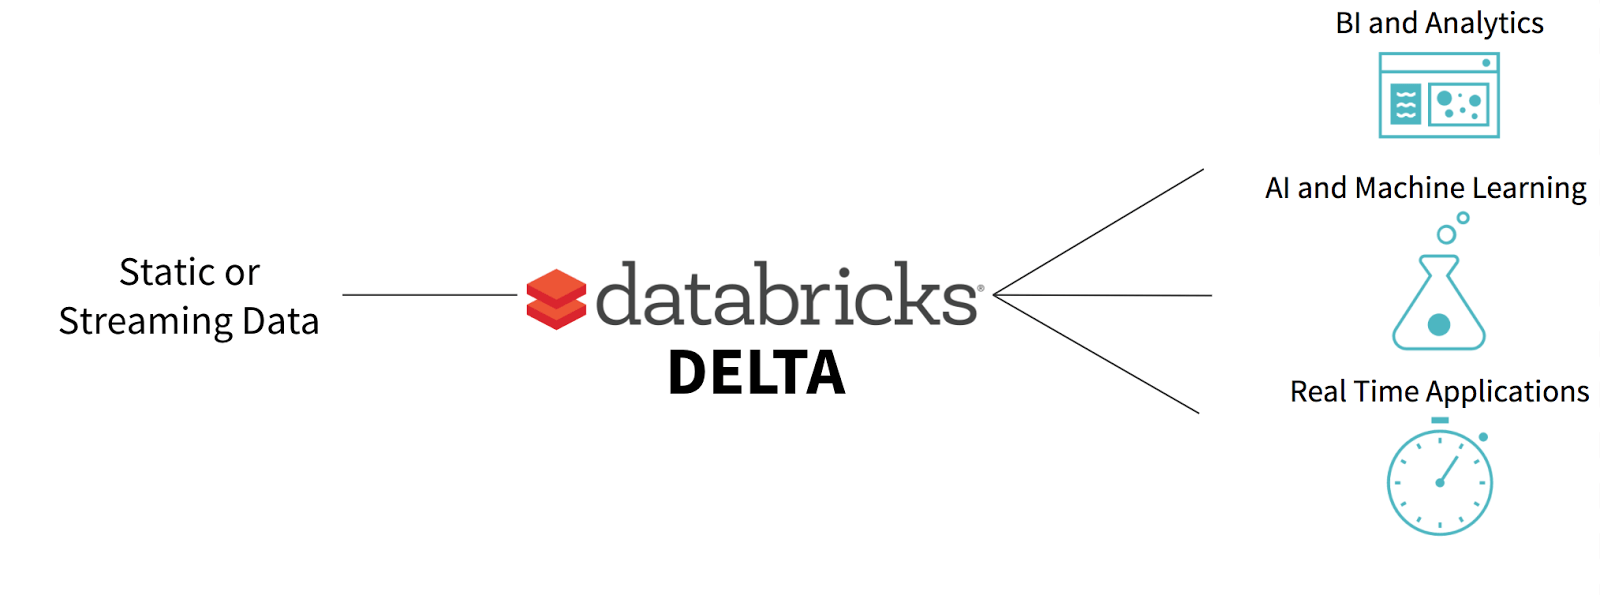 A Unified Data Management System for Real-time Big Data. Image credits Databricks